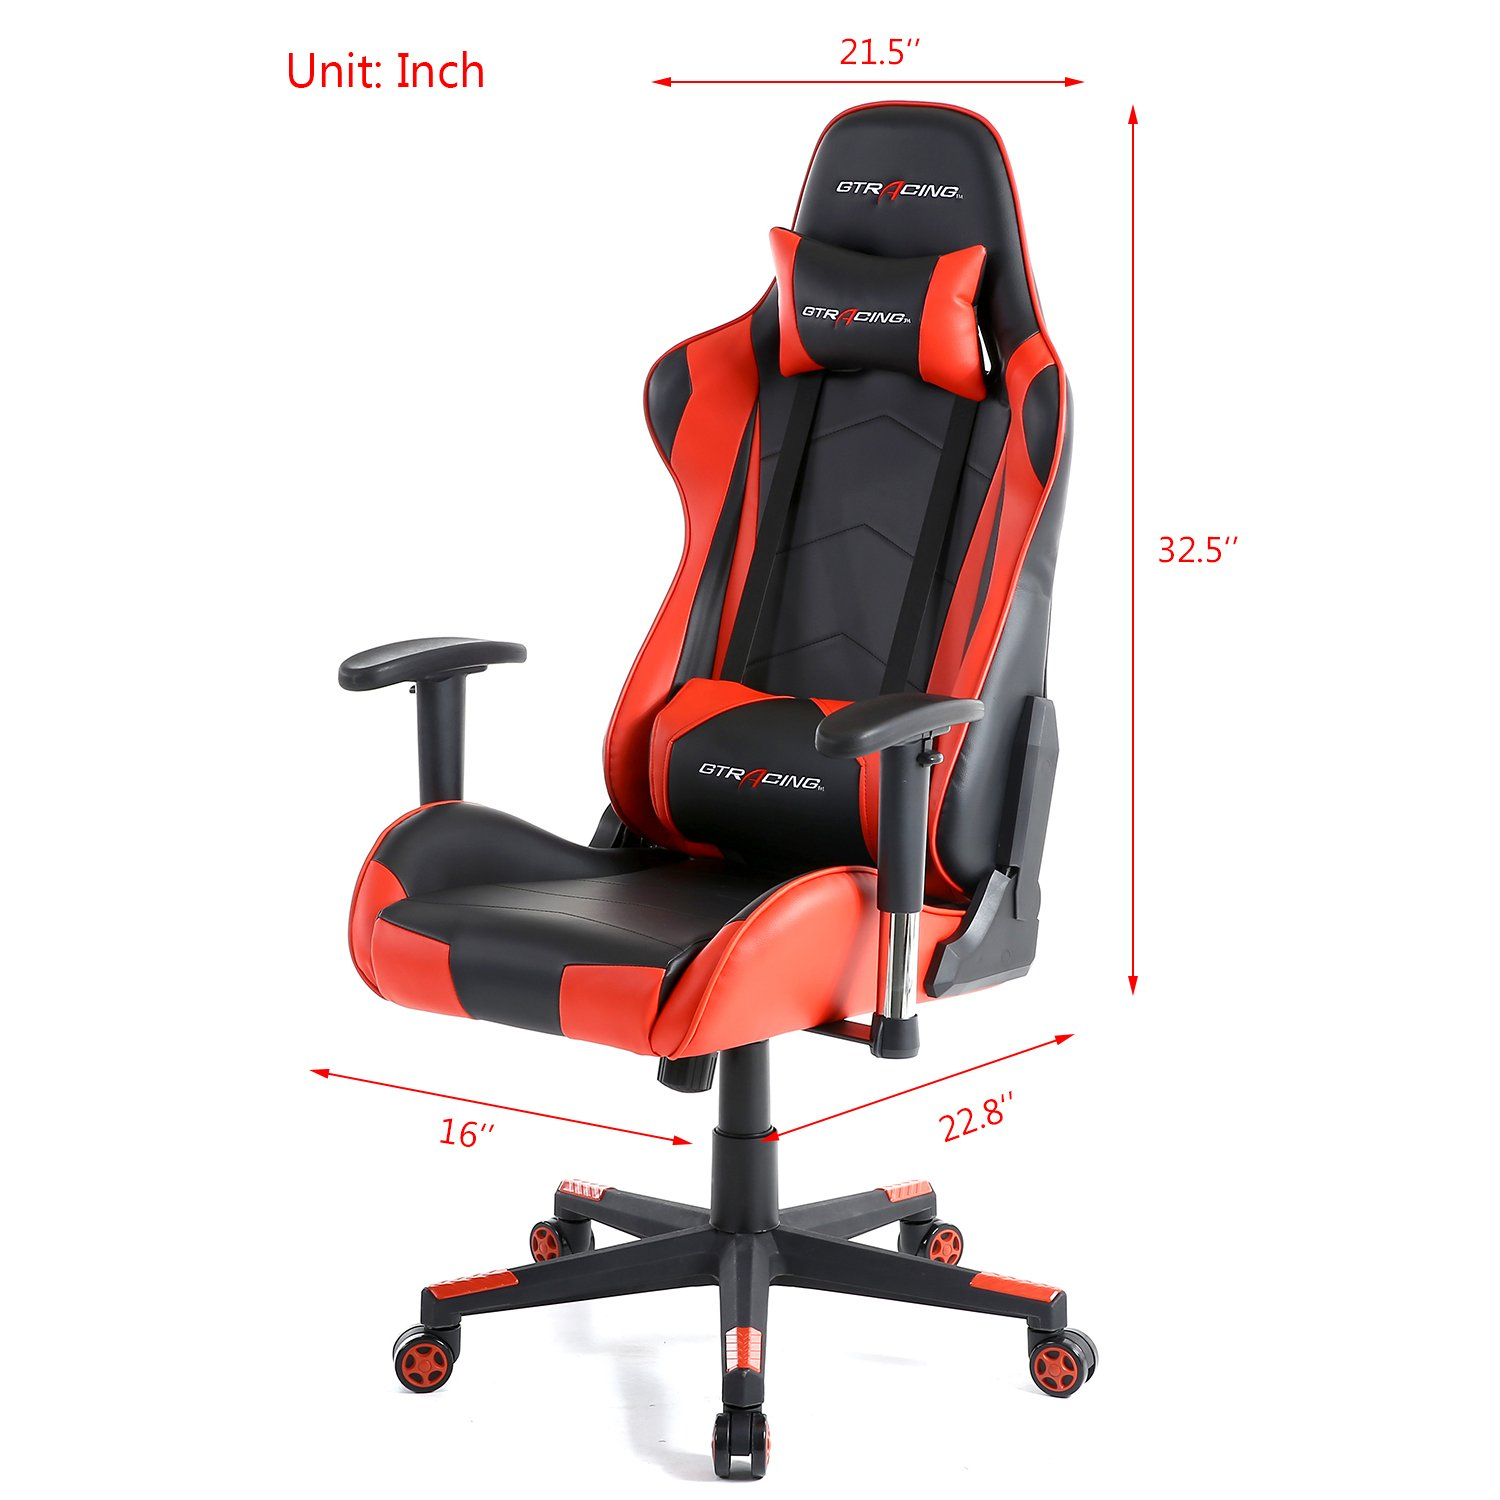 GTracing Ergonomic Office Chair Racing Chair Backrest and Seat Height Adjustment Computer Chair With Pillows Recliner Swivel Rocker Tilt E-sports Chair (Black/Red) by GTRACING (Image #8)